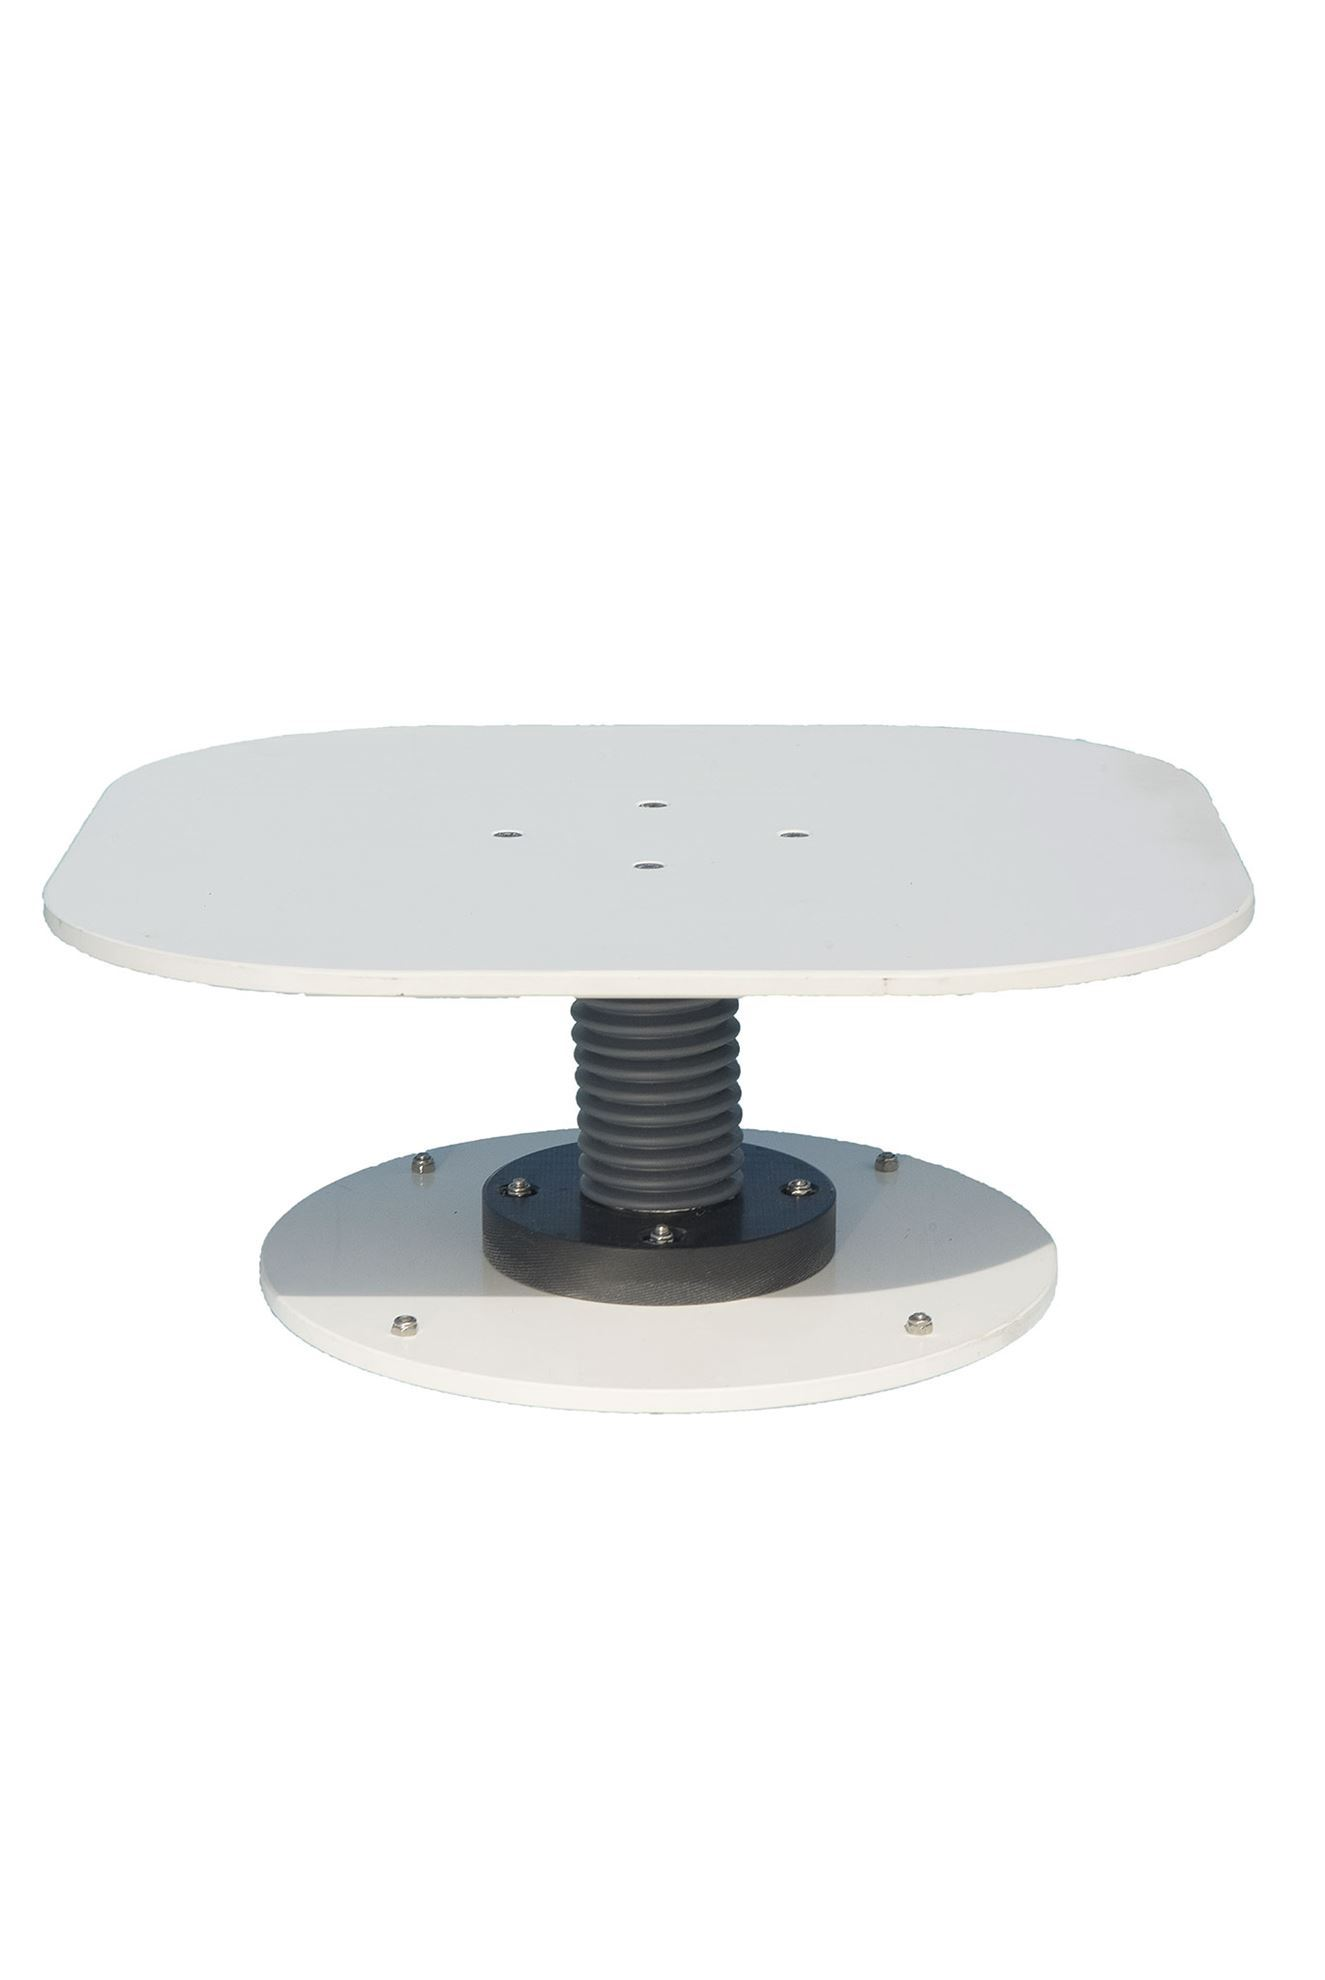 206093 - AQUA PROPRIOCEPTIVE PHYSIO TABLE